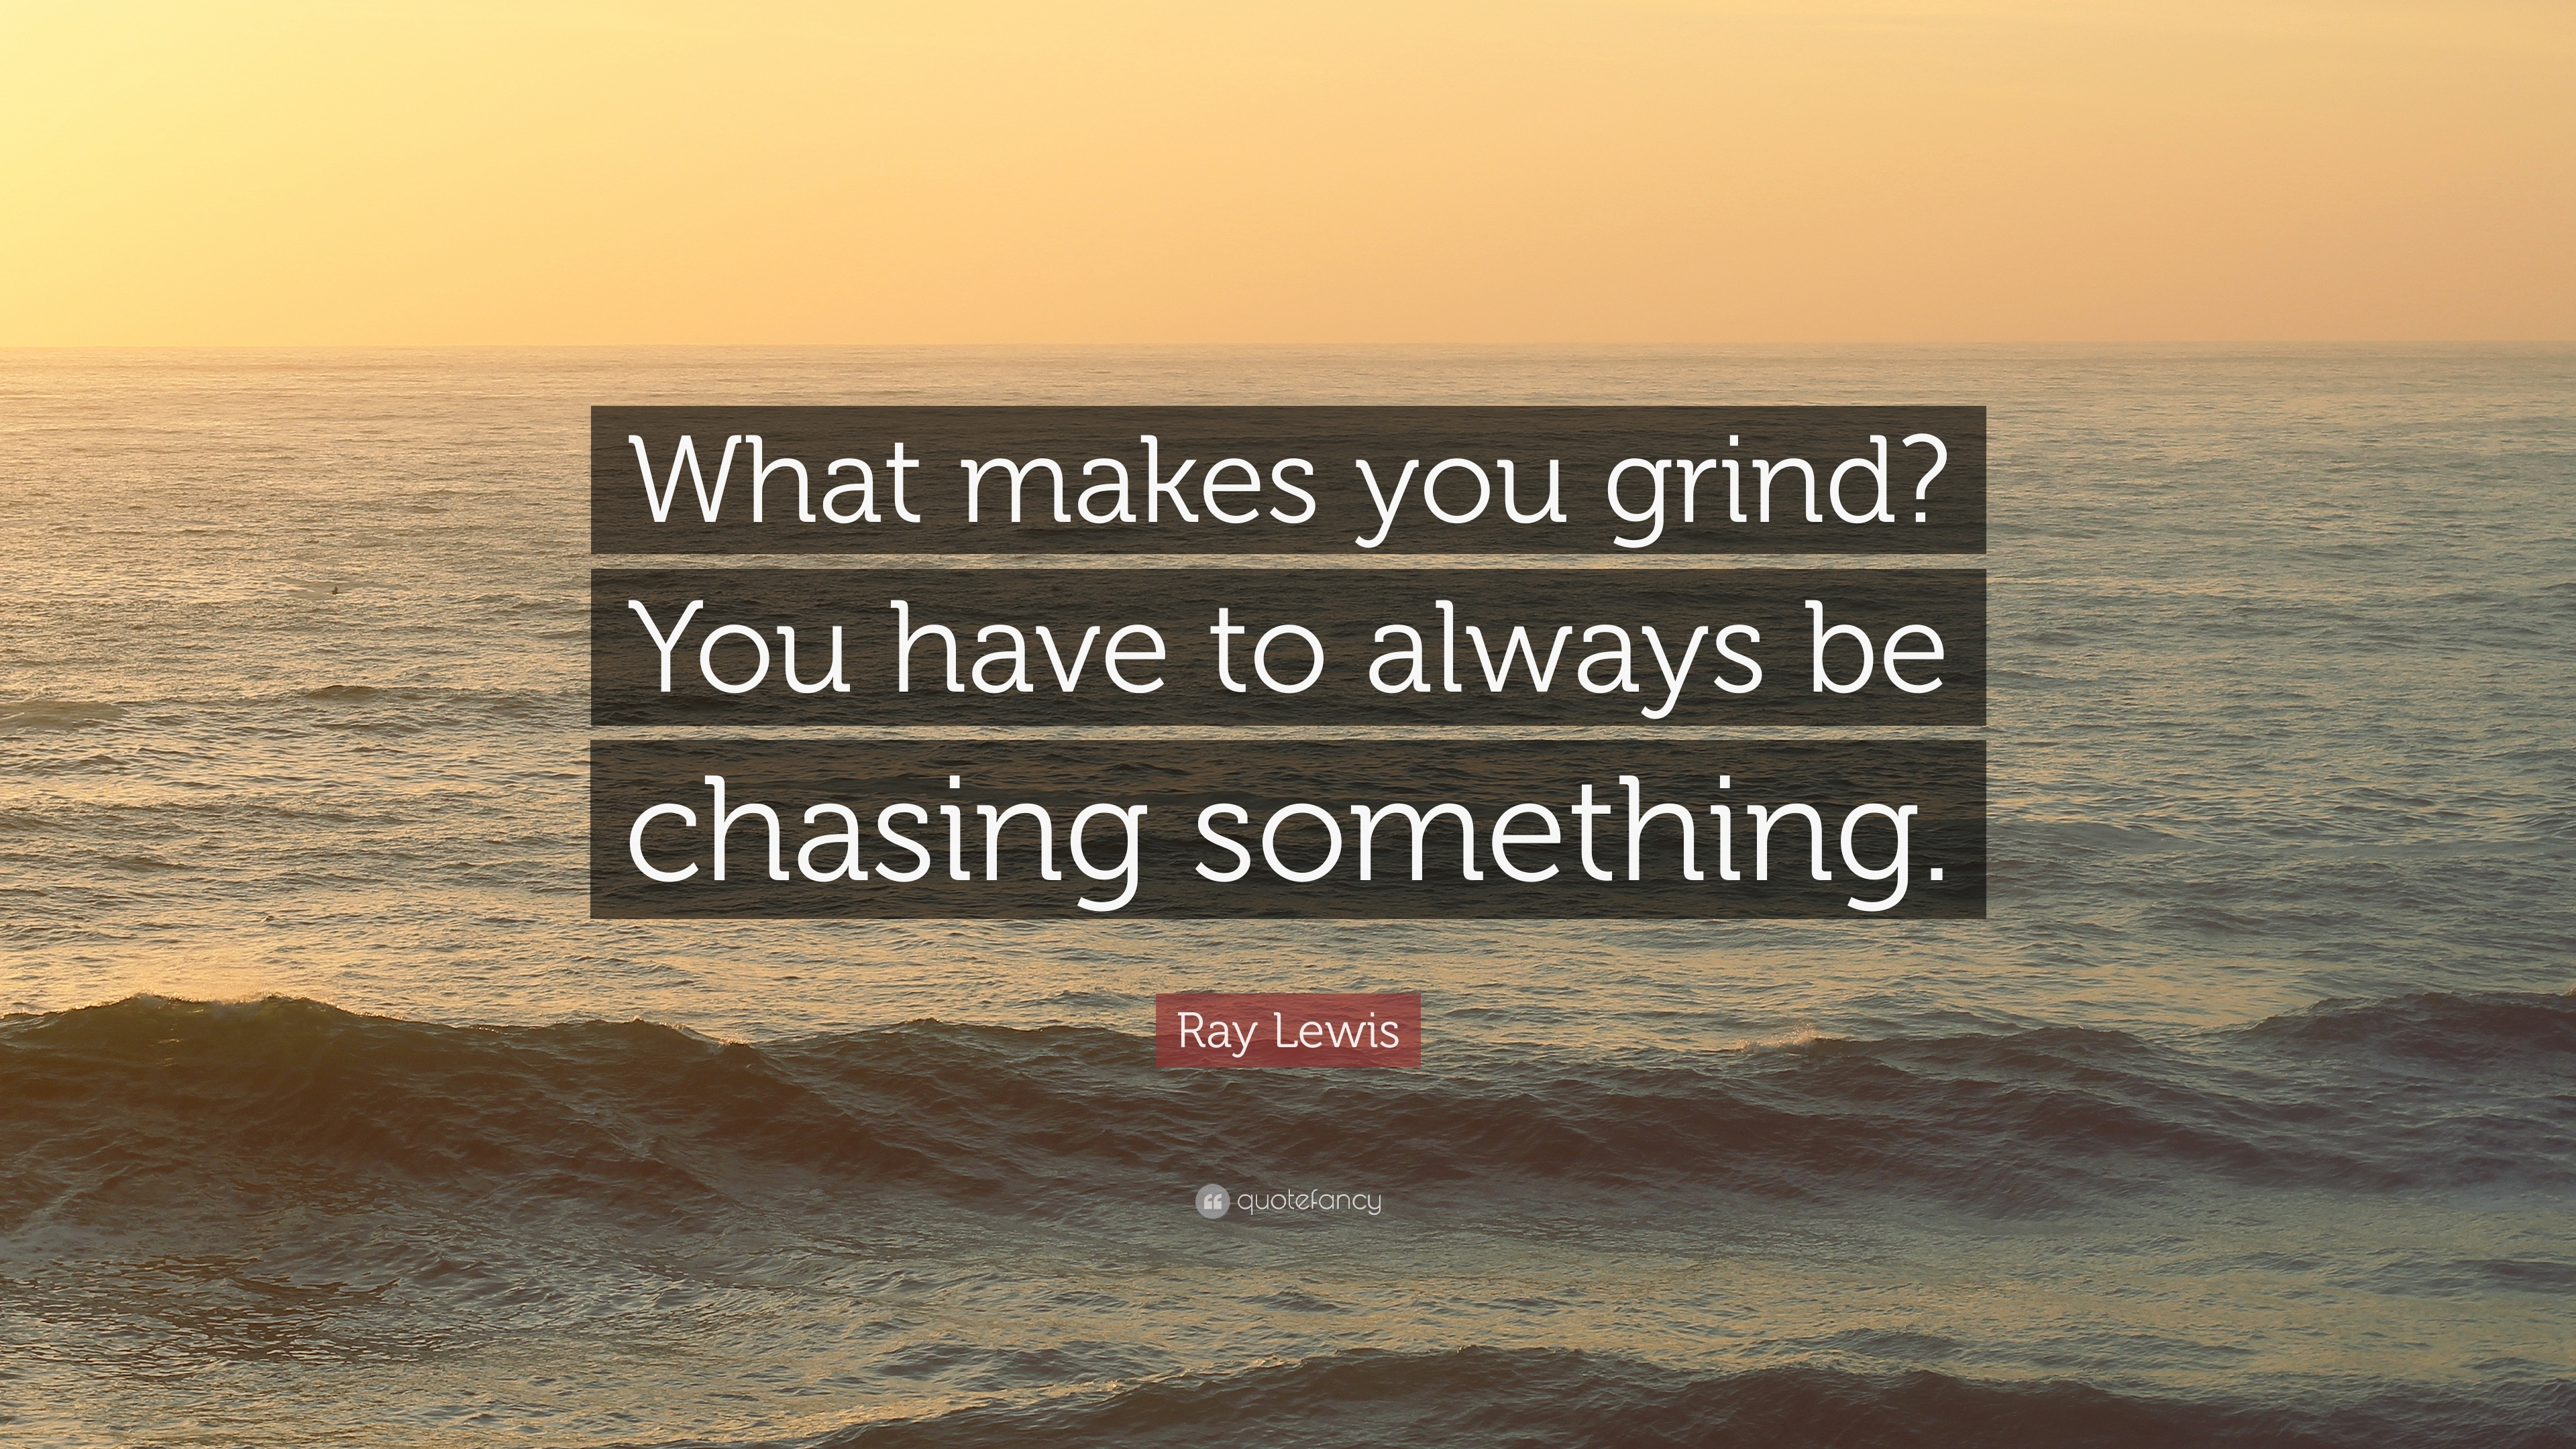 """Ray Lewis Quotes About Success: Ray Lewis Quote: """"What Makes You Grind? You Have To Always"""